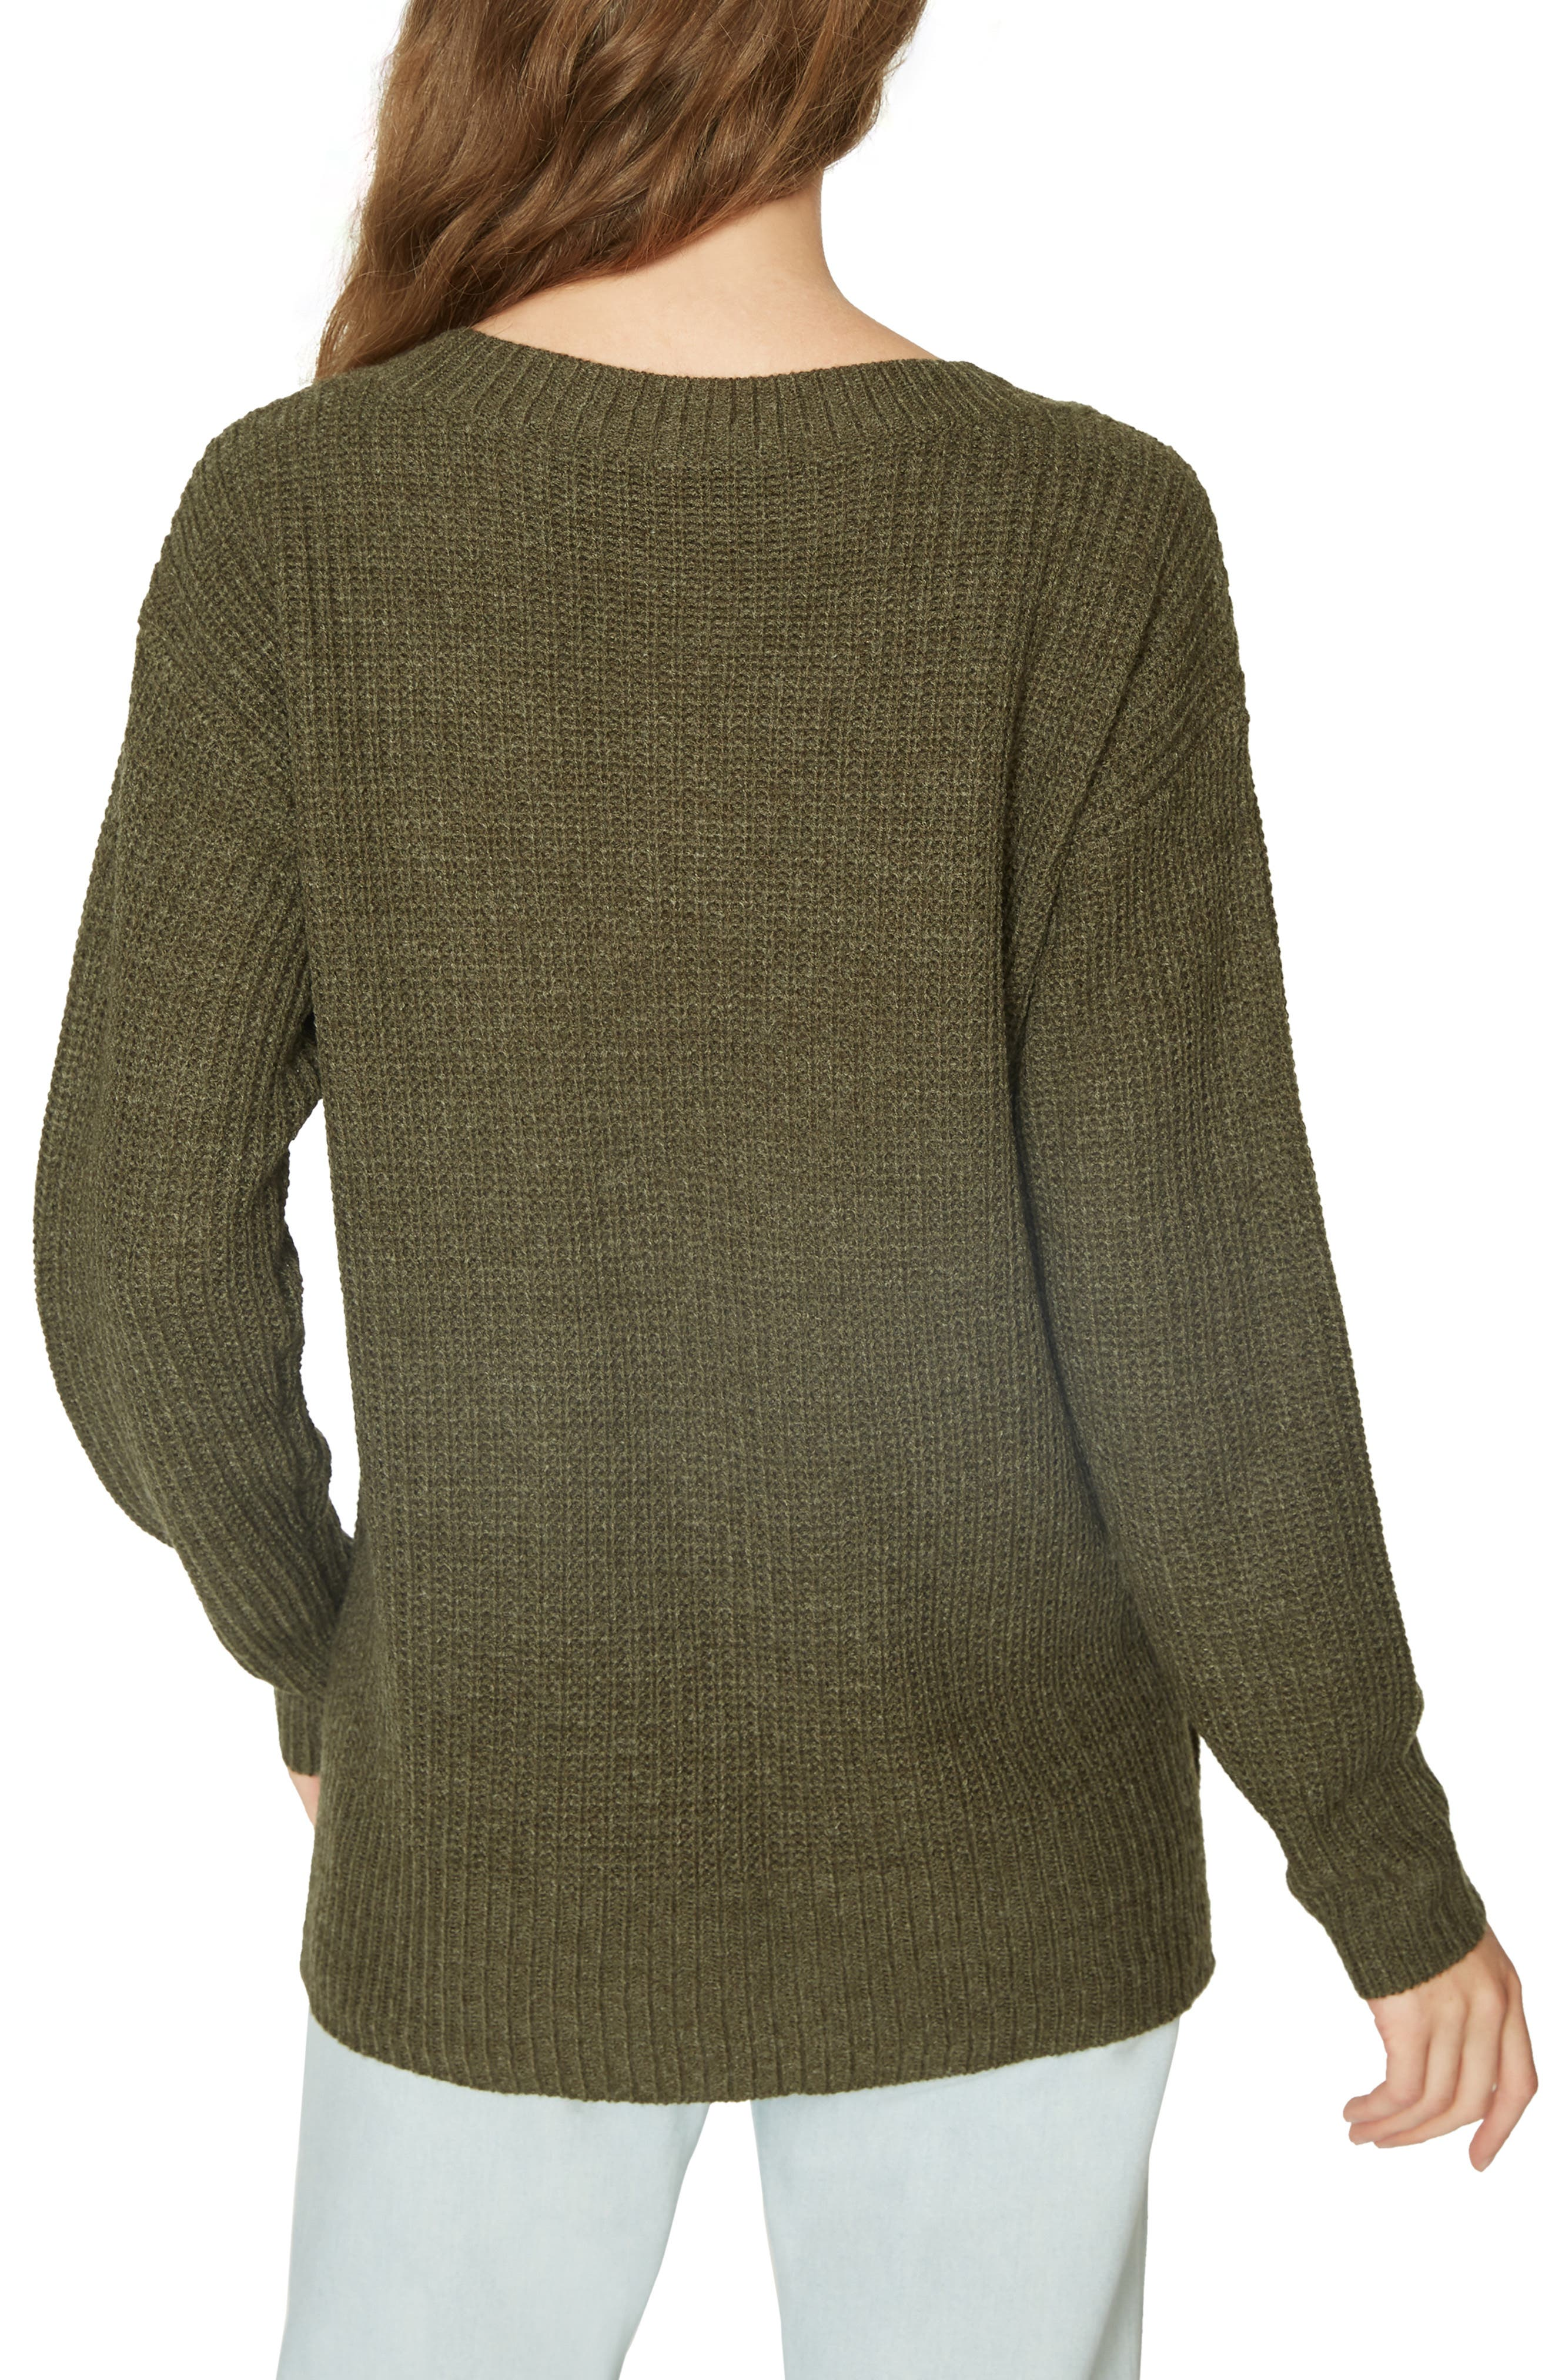 Amare Shaker Sweater,                             Alternate thumbnail 2, color,                             HEATHER PROSPERITY GREEN